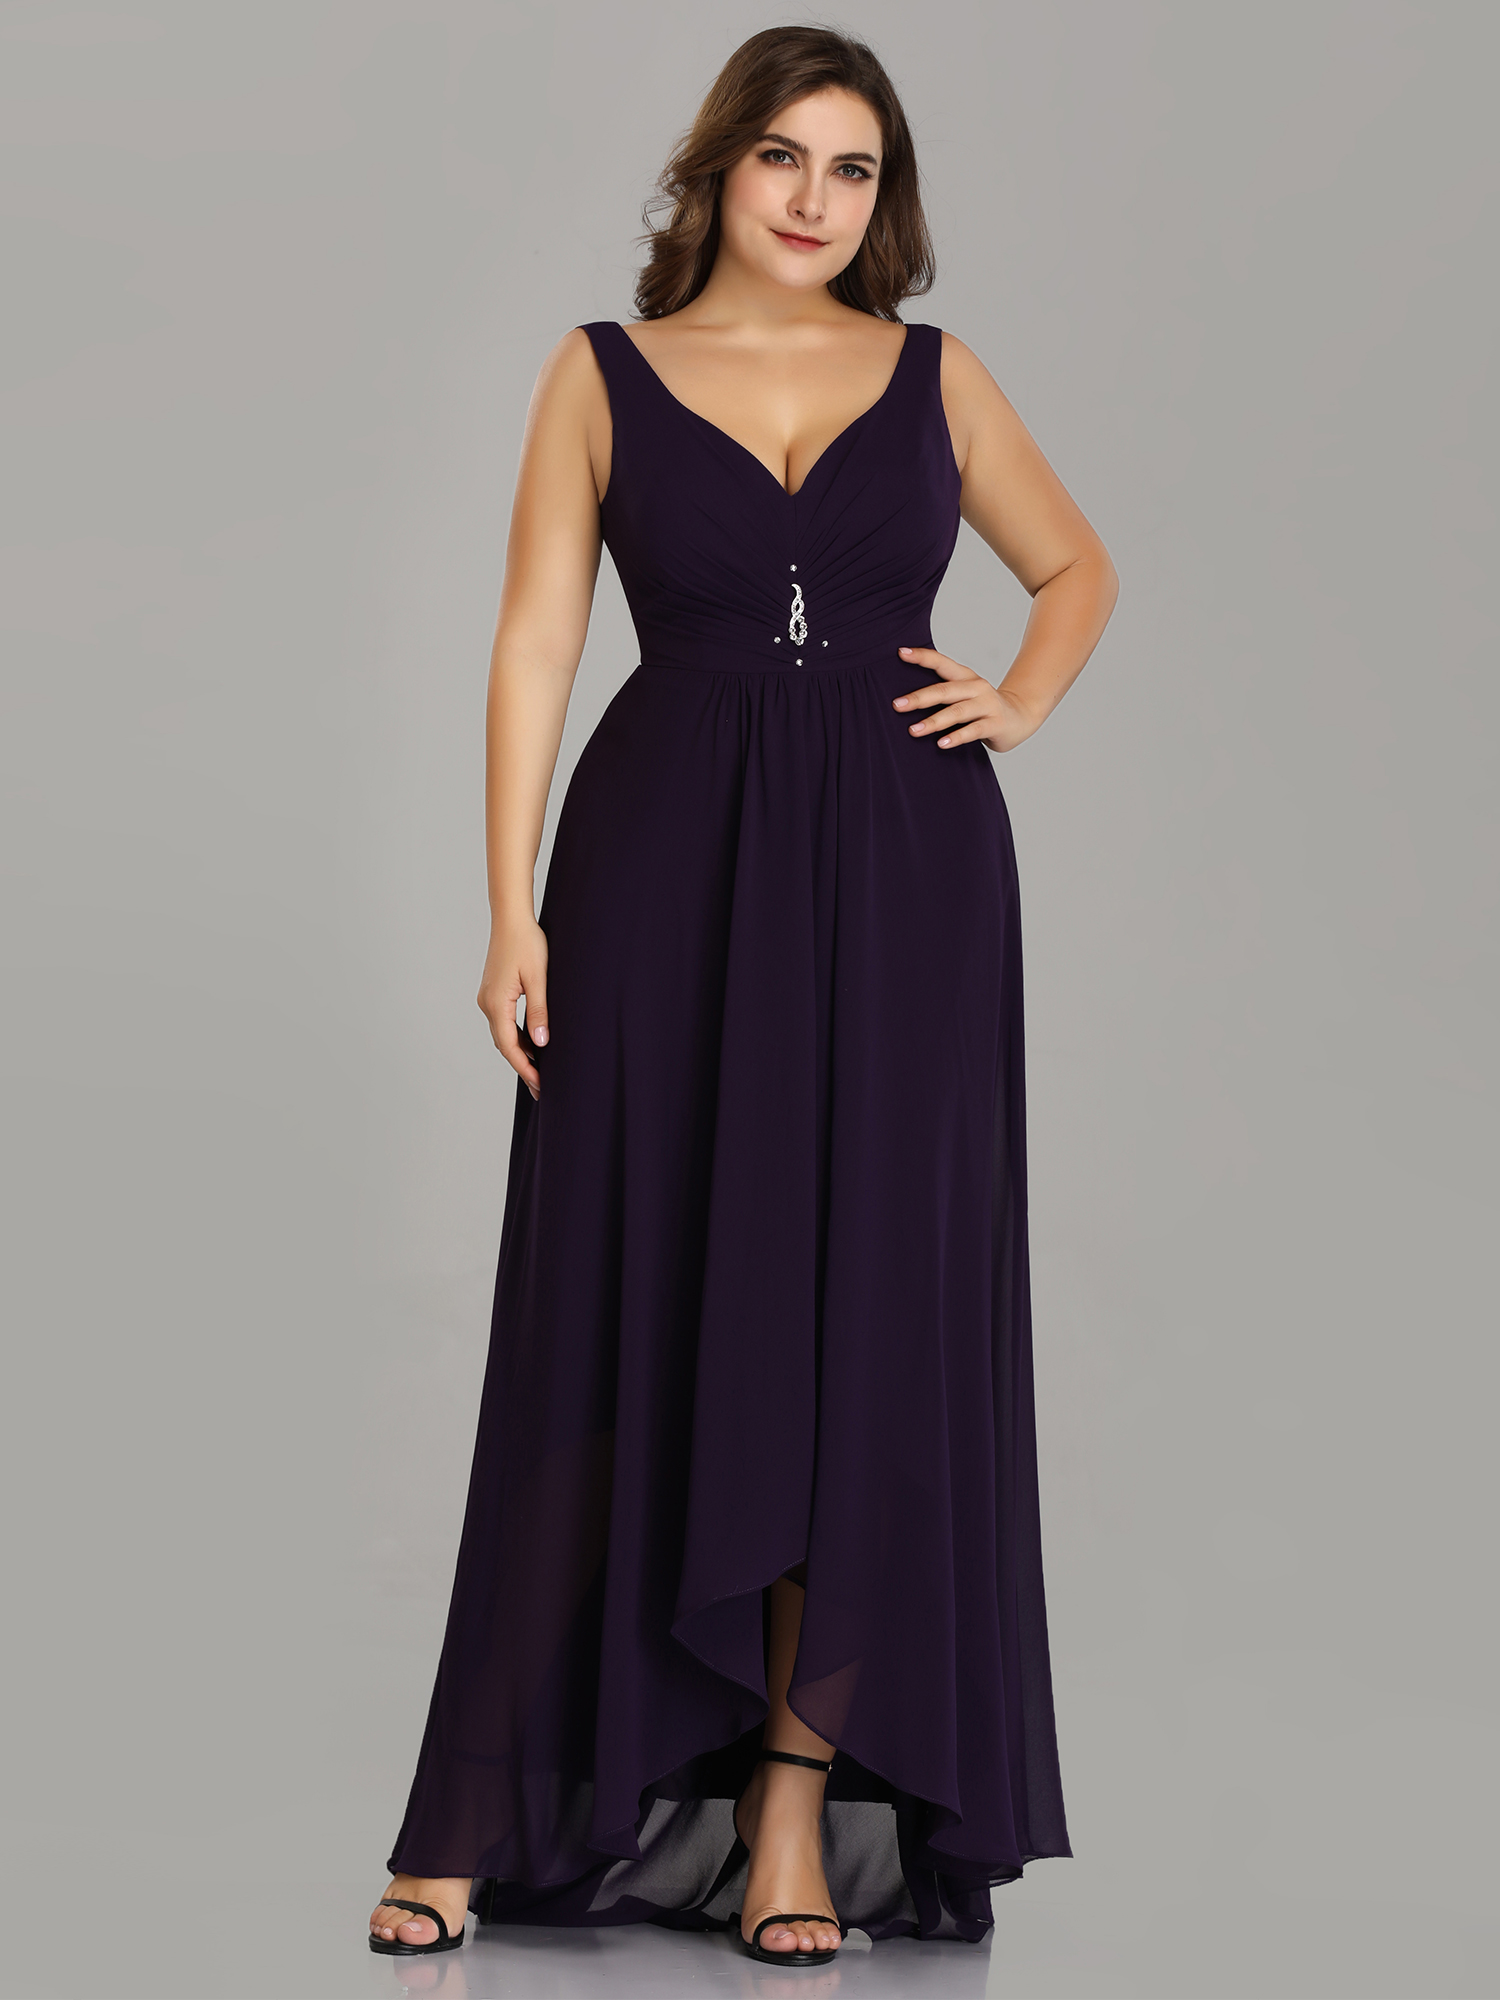 Ever-Pretty Womens Plus Size Long Evening Ball Gown Winter Holiday Party  Maxi Dresses for Women 9983P Black US 22